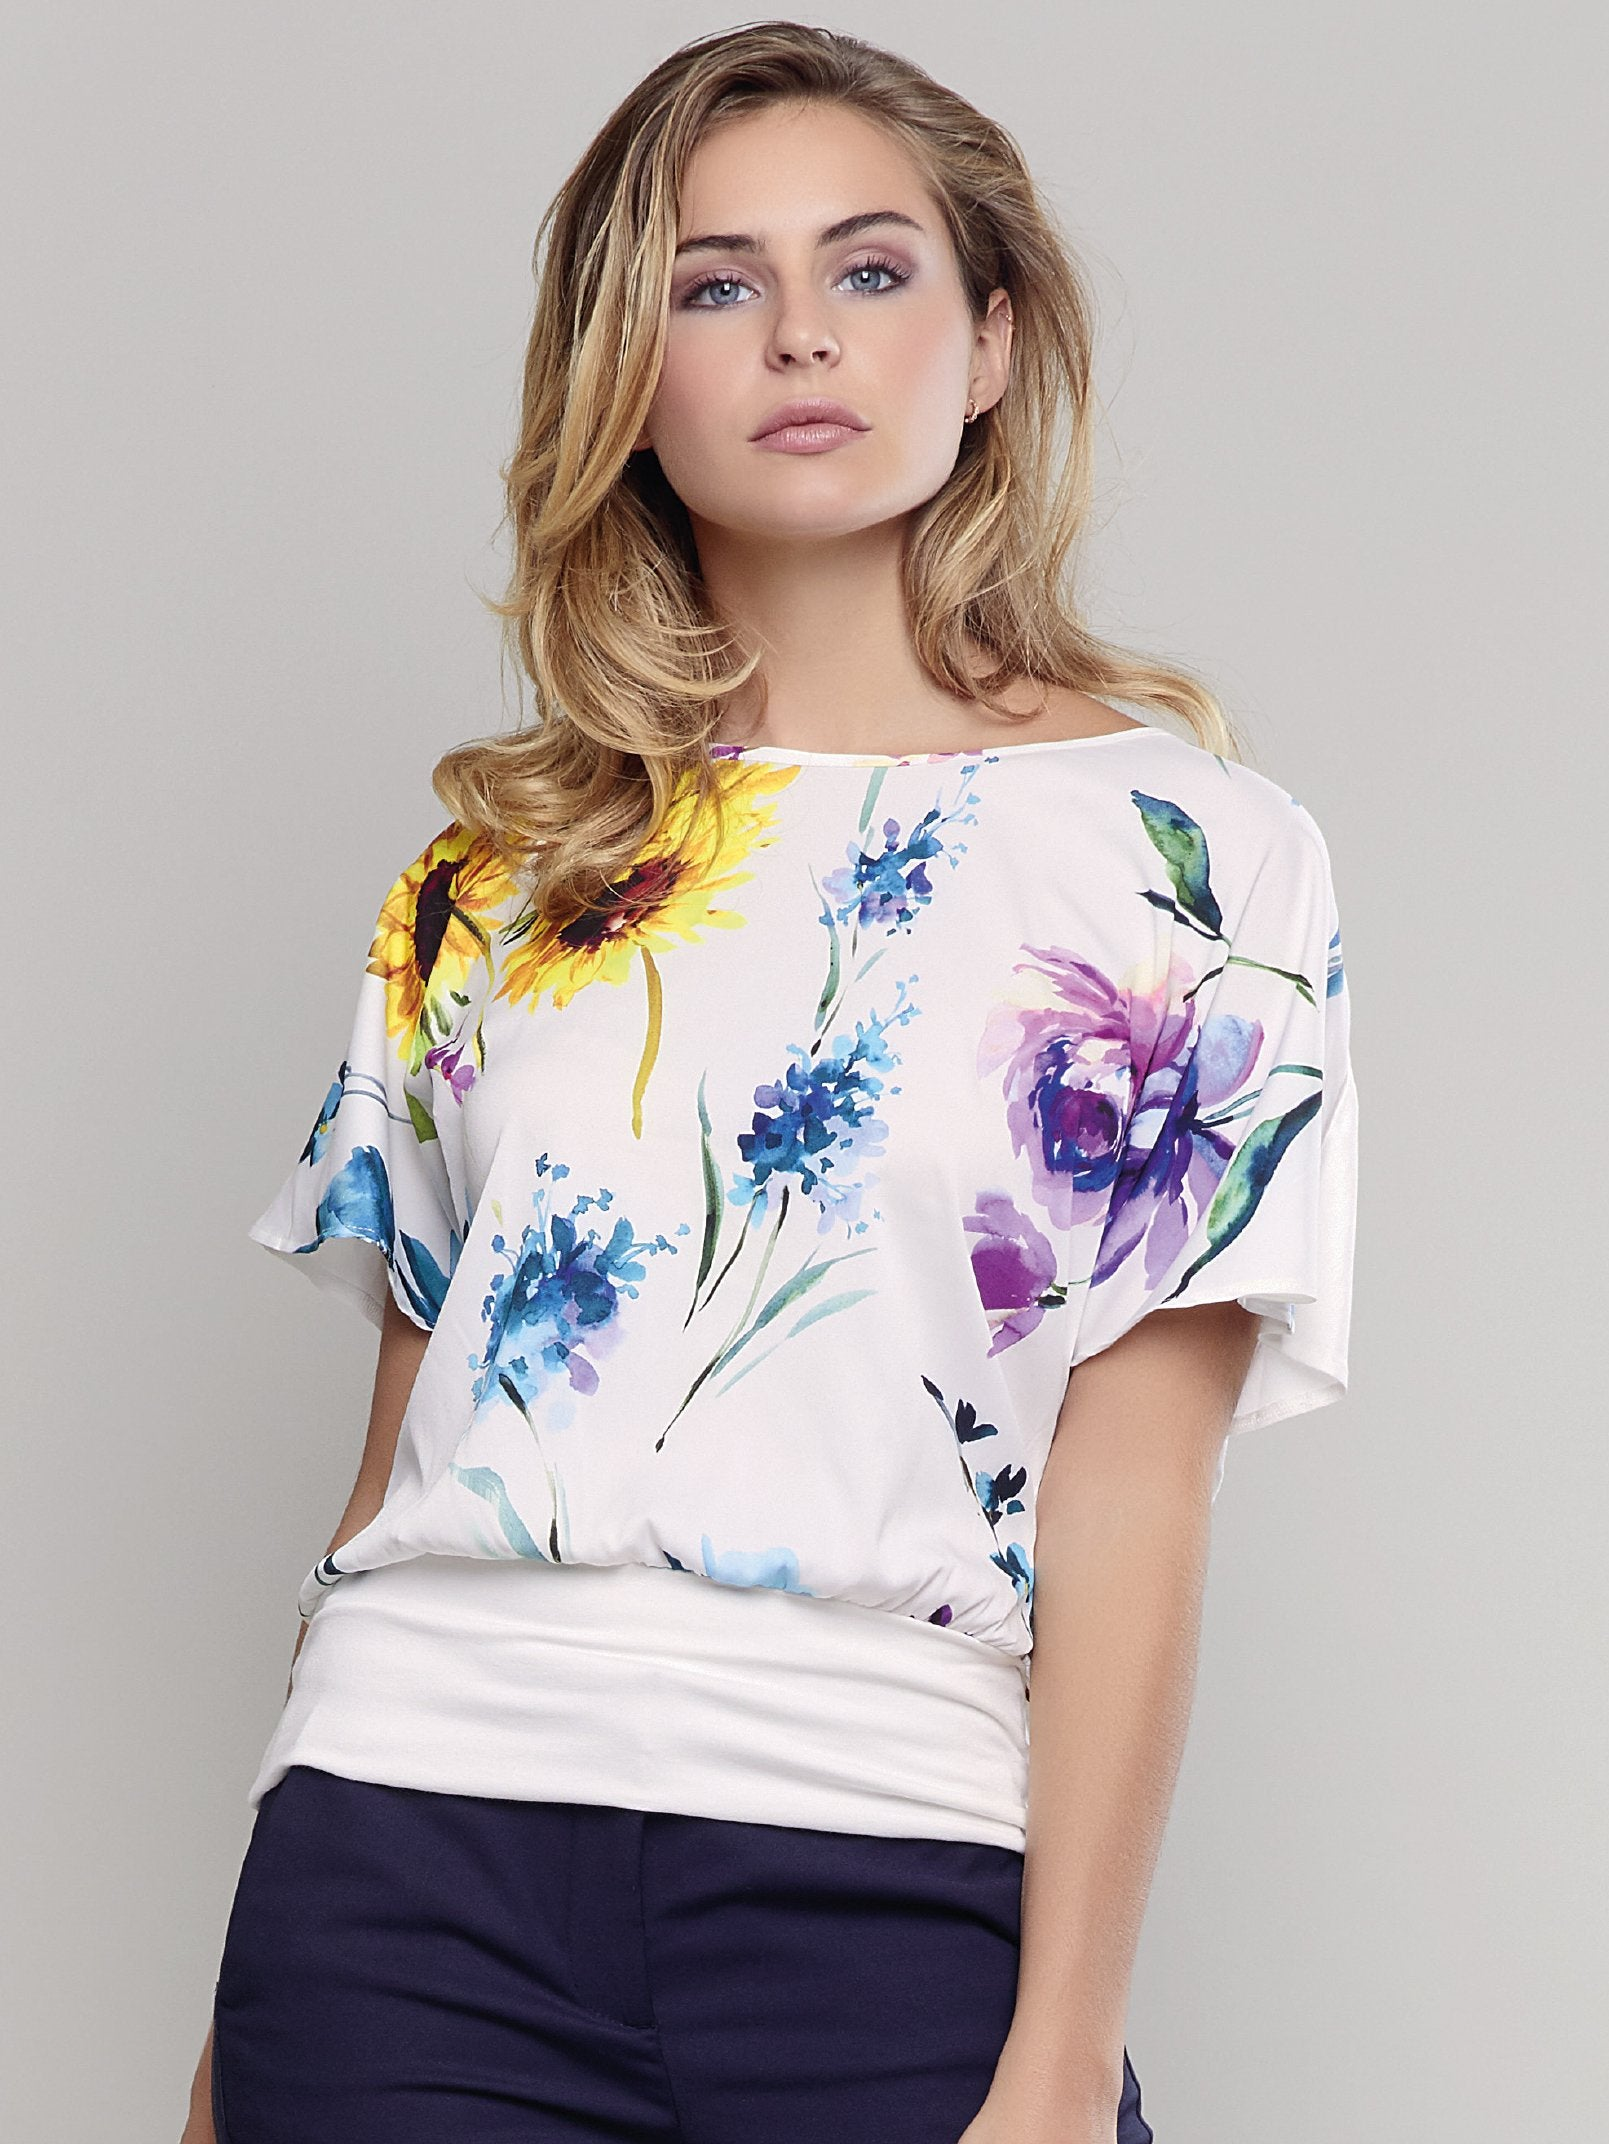 Passioni Ecru Jersey Top with Floral Woven Front